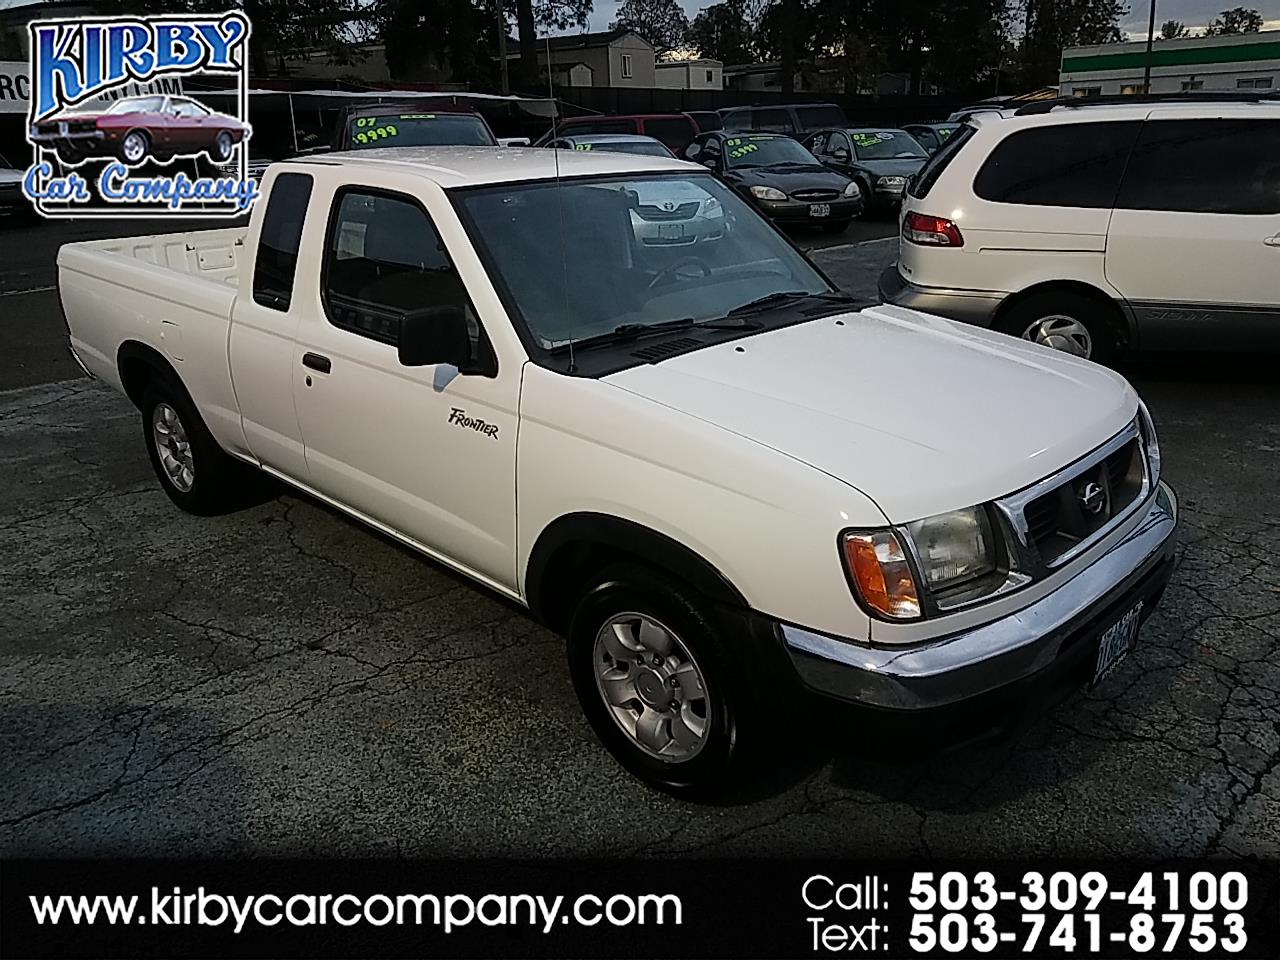 1999 Nissan Frontier XE King Cab 2WD 4-CYL AUTOMATIC! CLEAN TITLE!